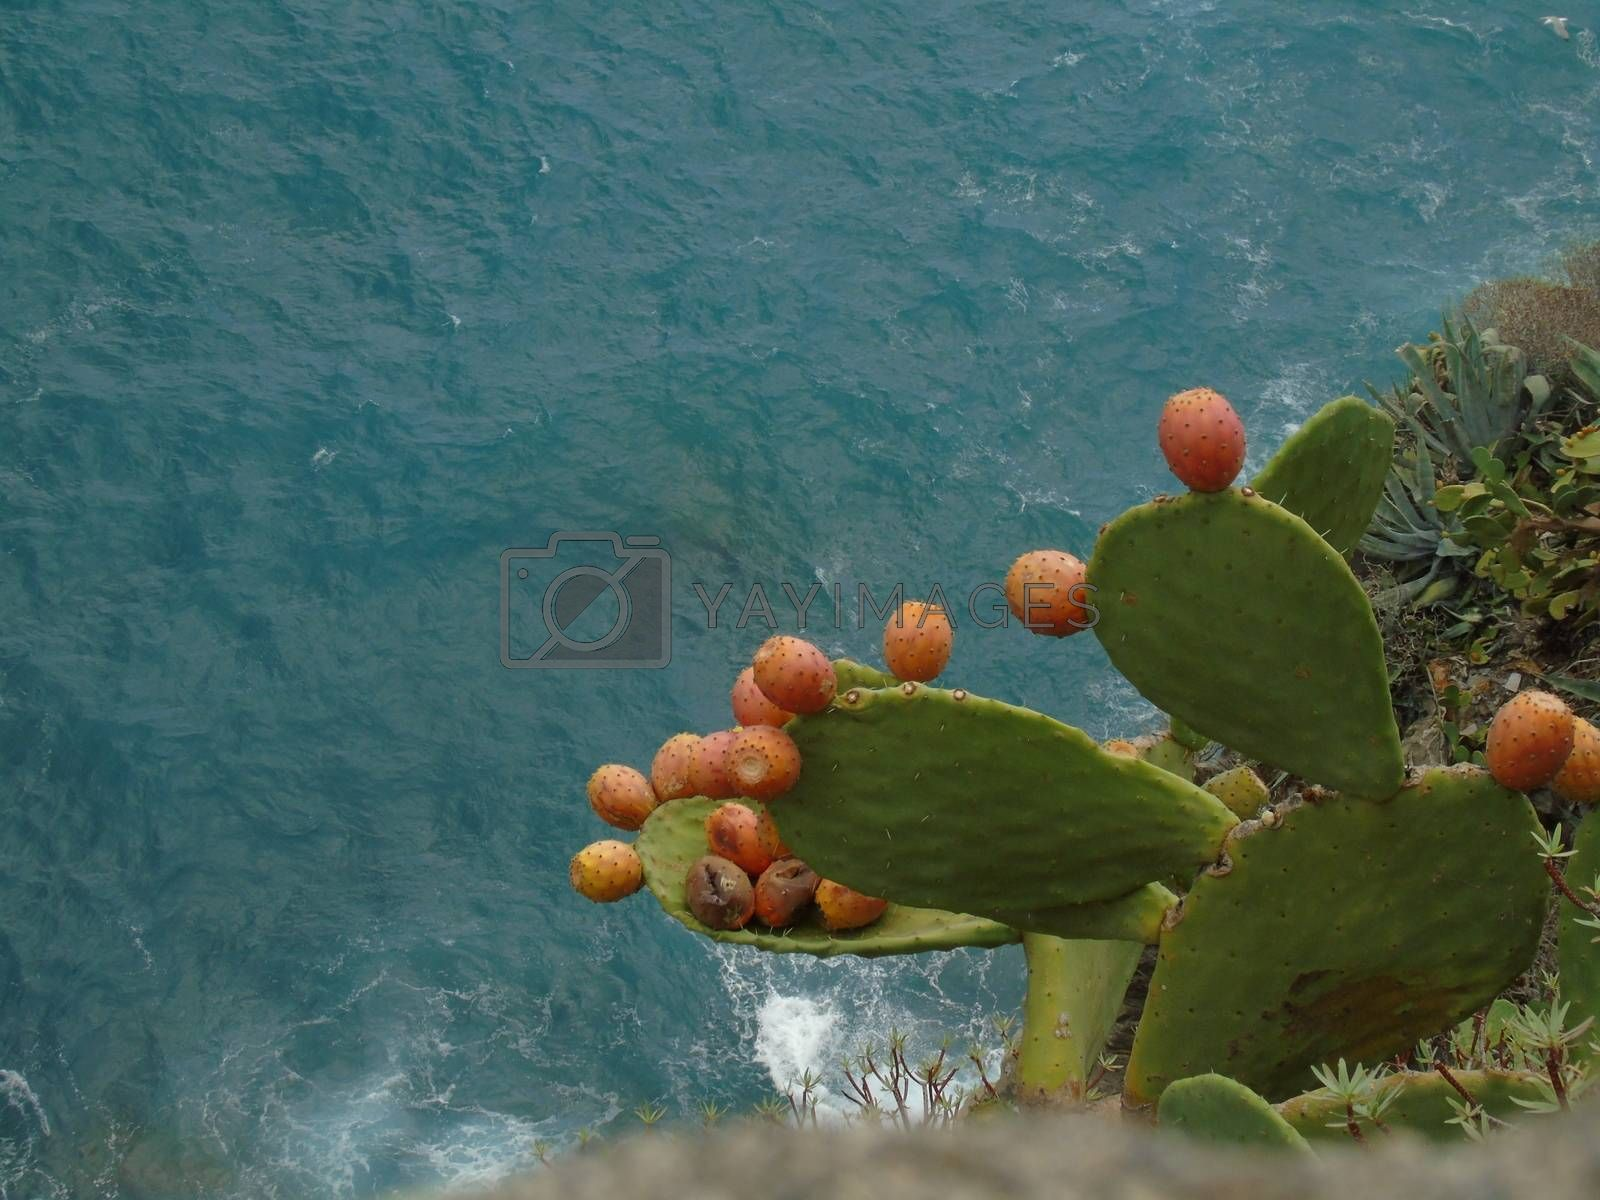 Royalty free image of Landscape from Cinque Terre by yohananegusse